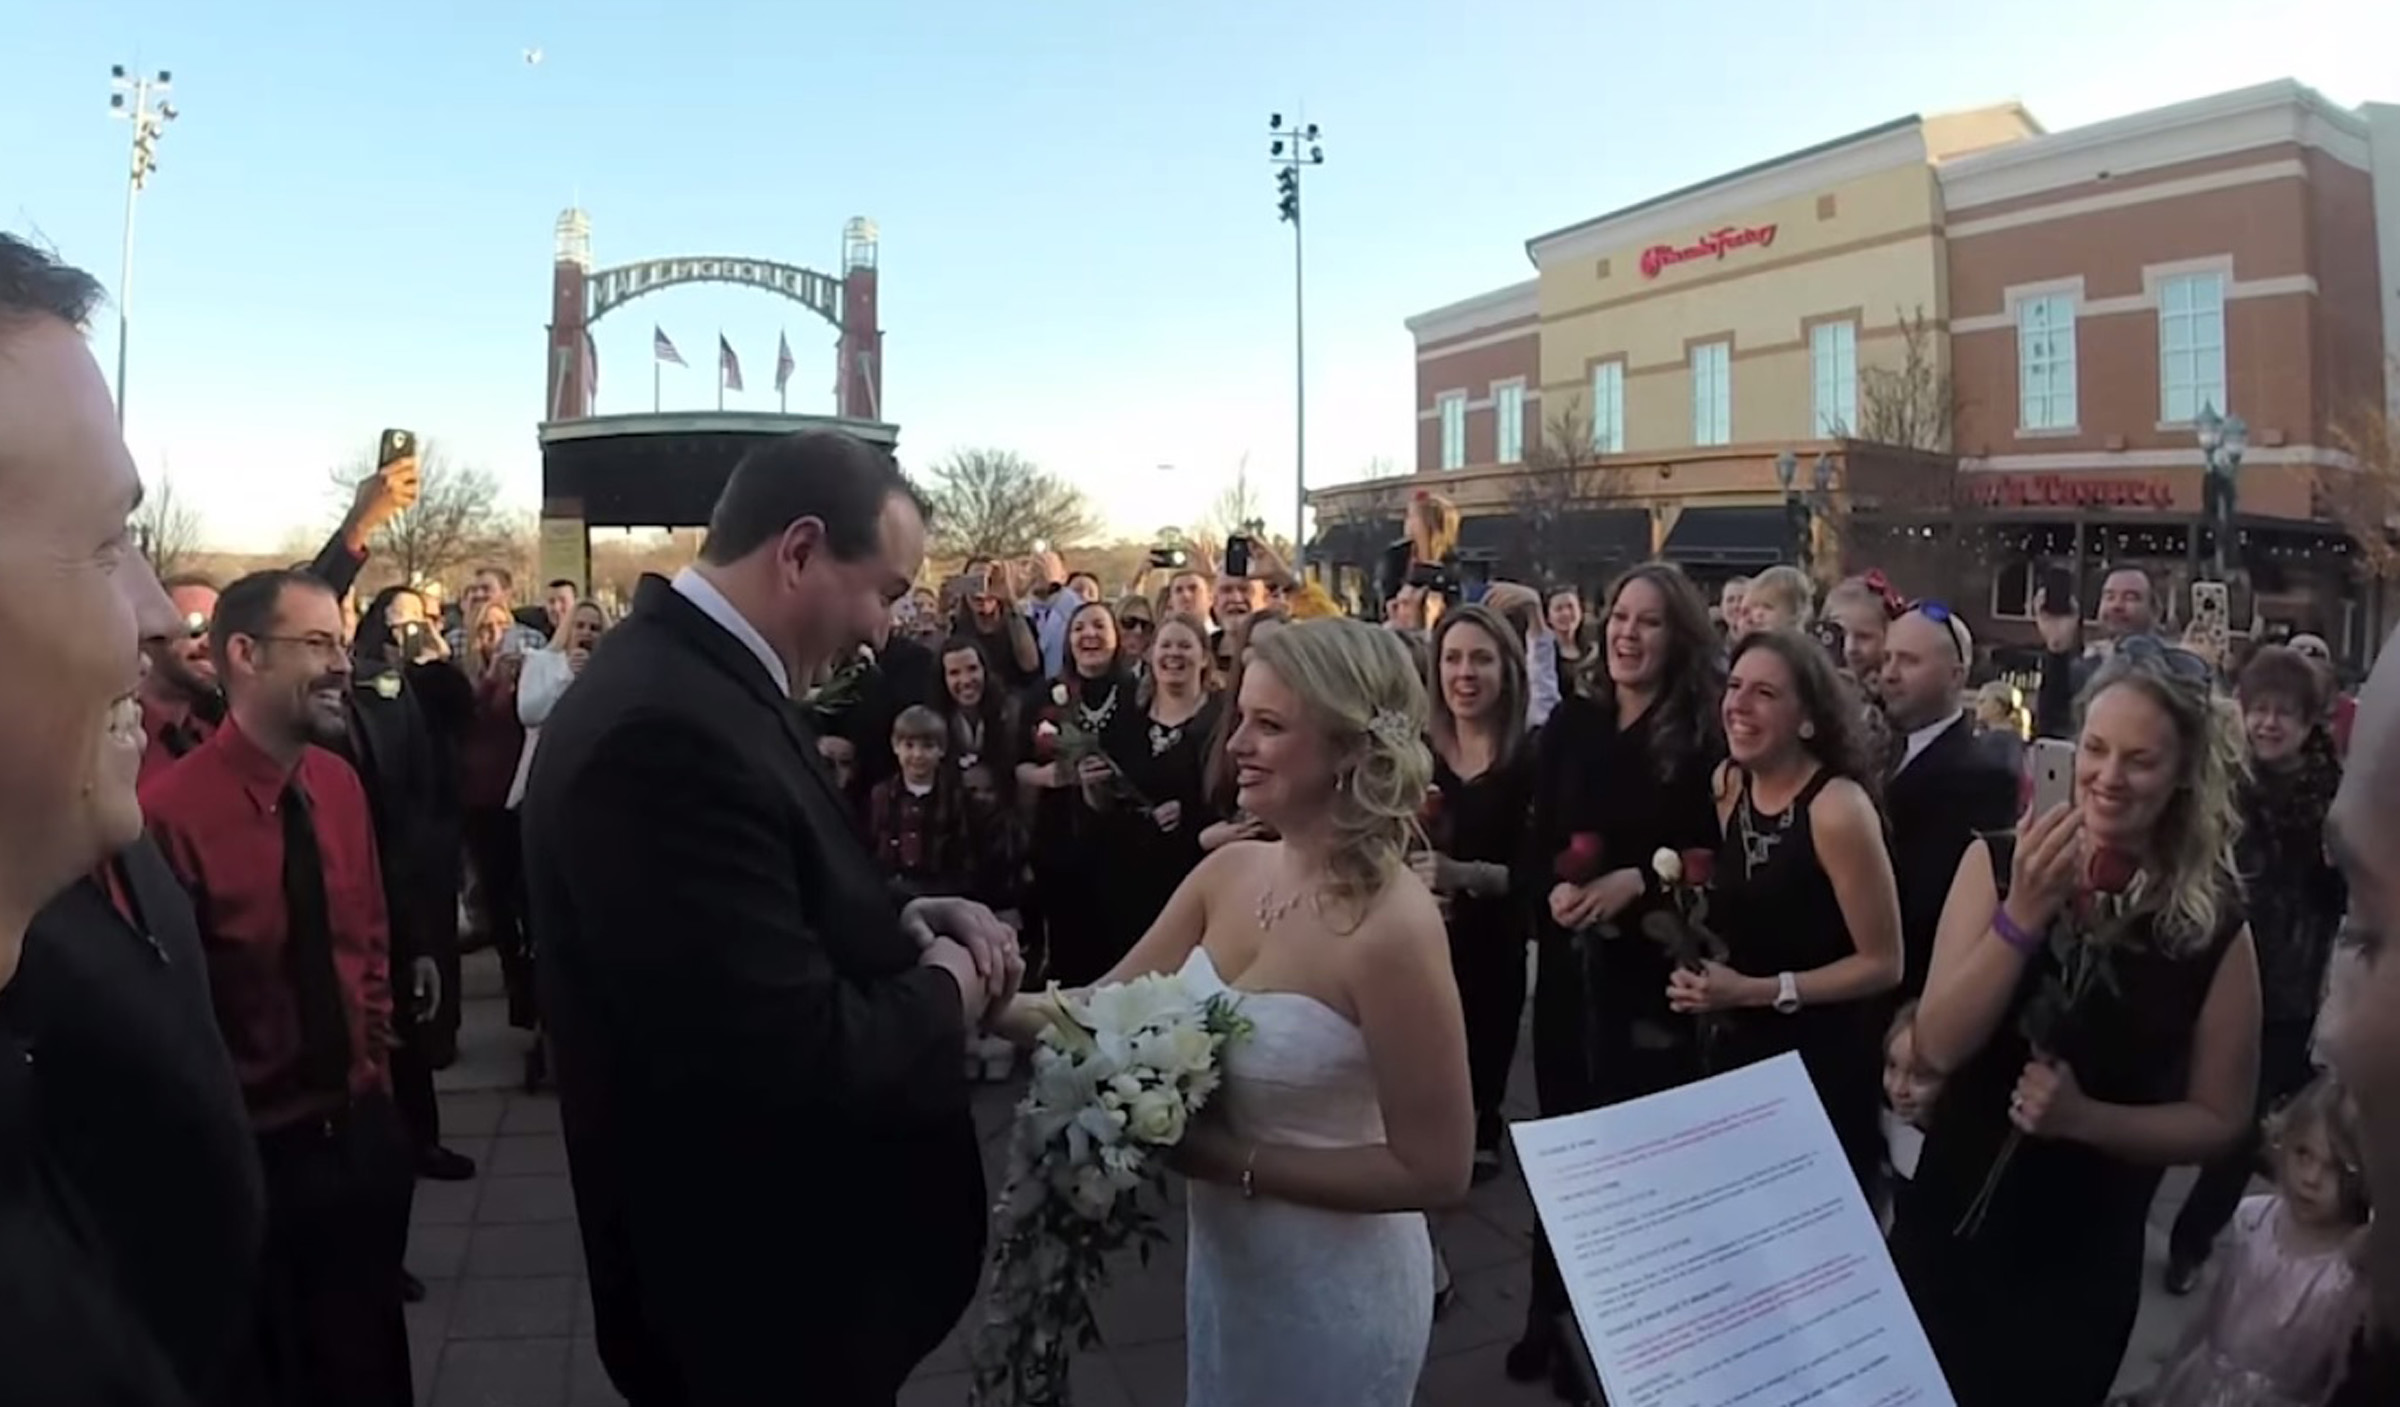 Groom Ups The Stakes With Georgia Flash Mob Wedding To Surprise Bride